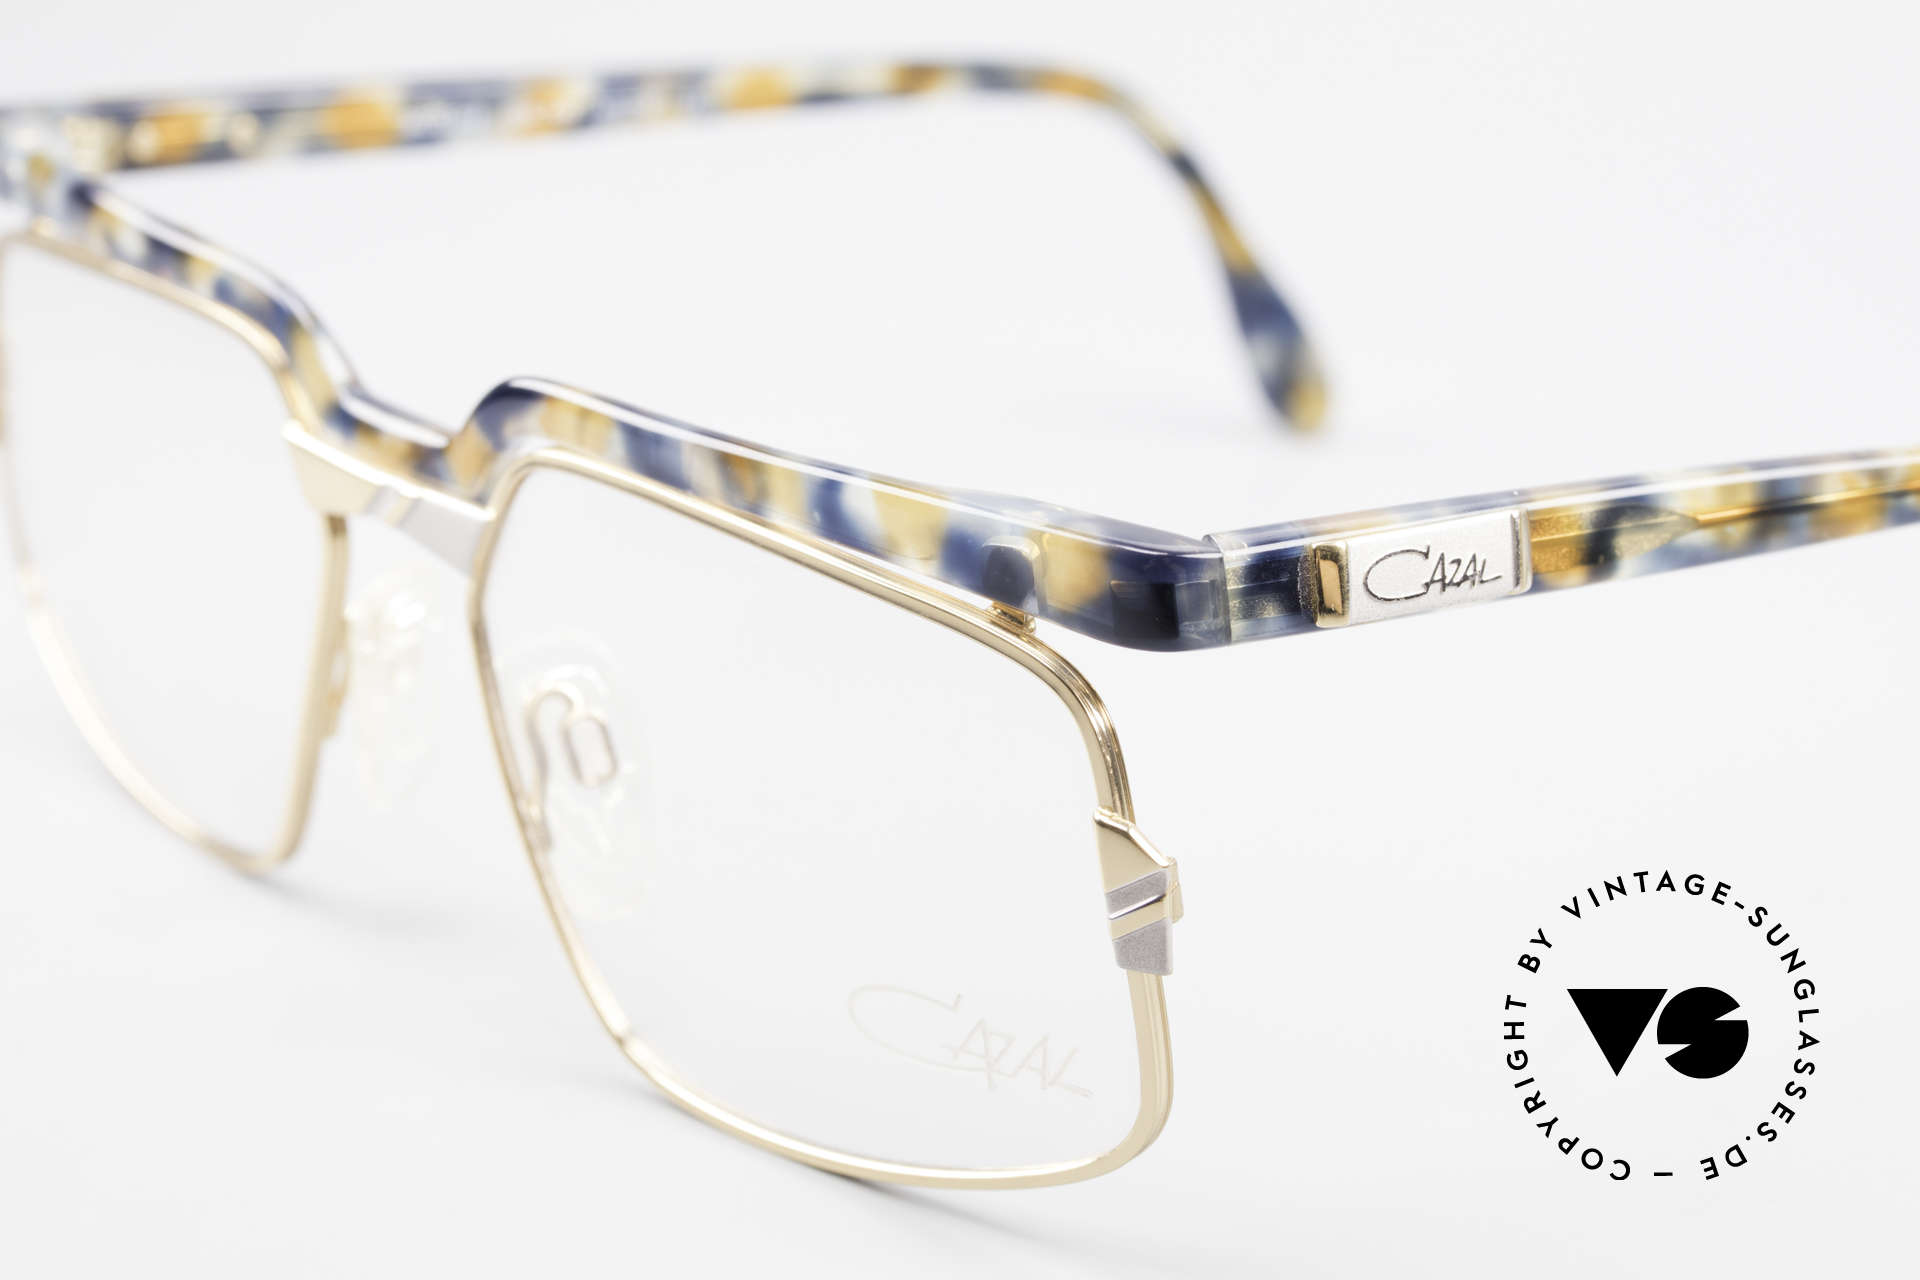 Cazal 246 Extraordinary Vintage Glasses, never worn (like all our rare vintage eyeglasses), Made for Men and Women